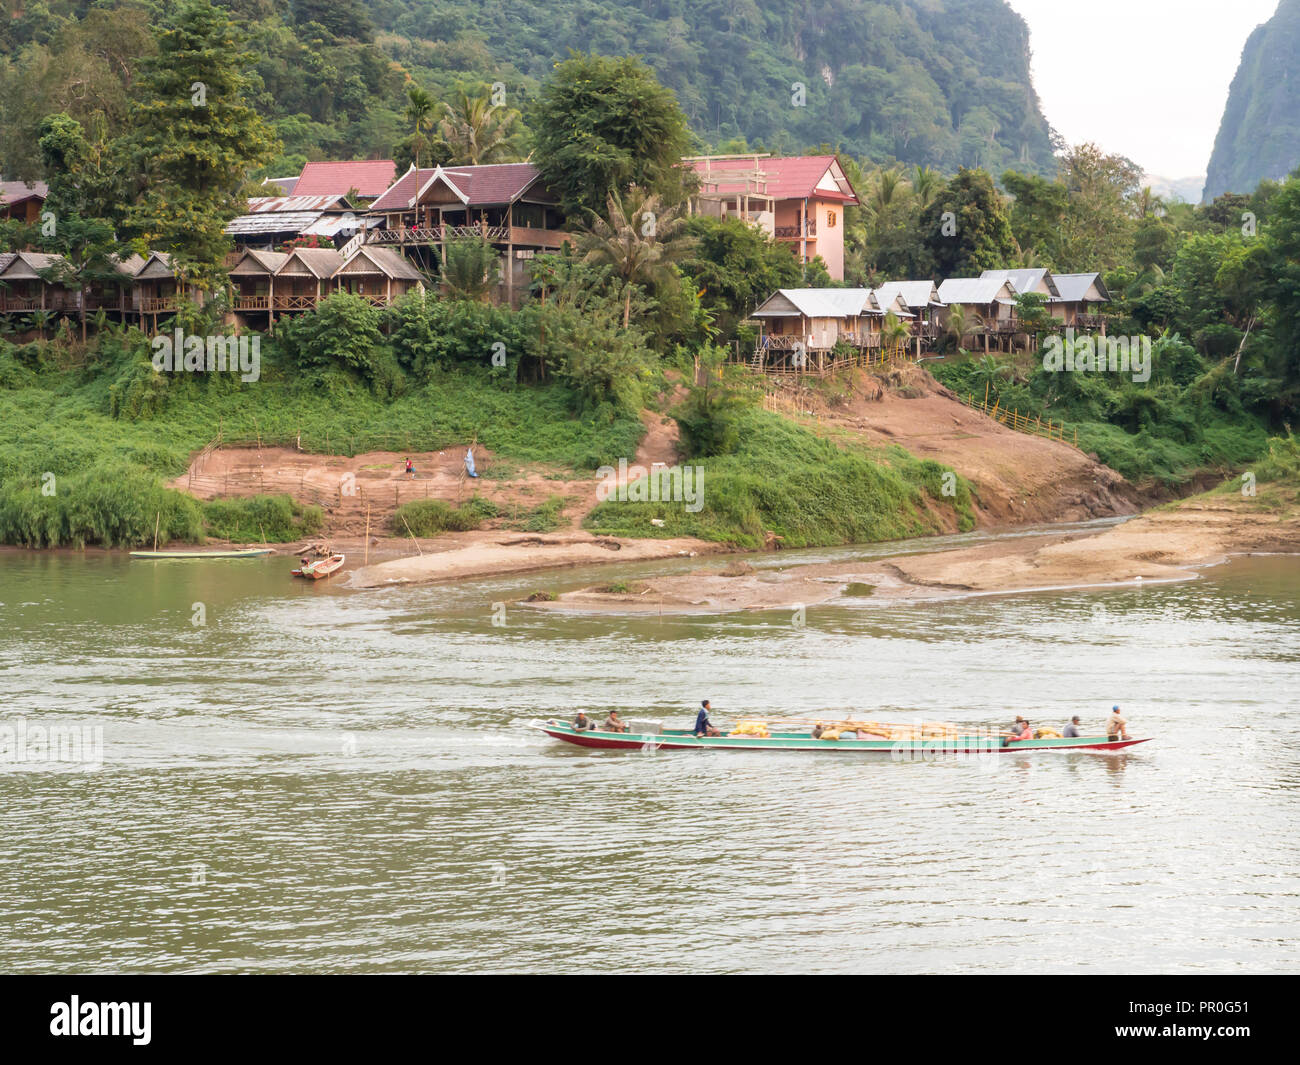 Riverboat and village, Nong Khiaw, Laos, Indochina, Southeast Asia, Asia - Stock Image